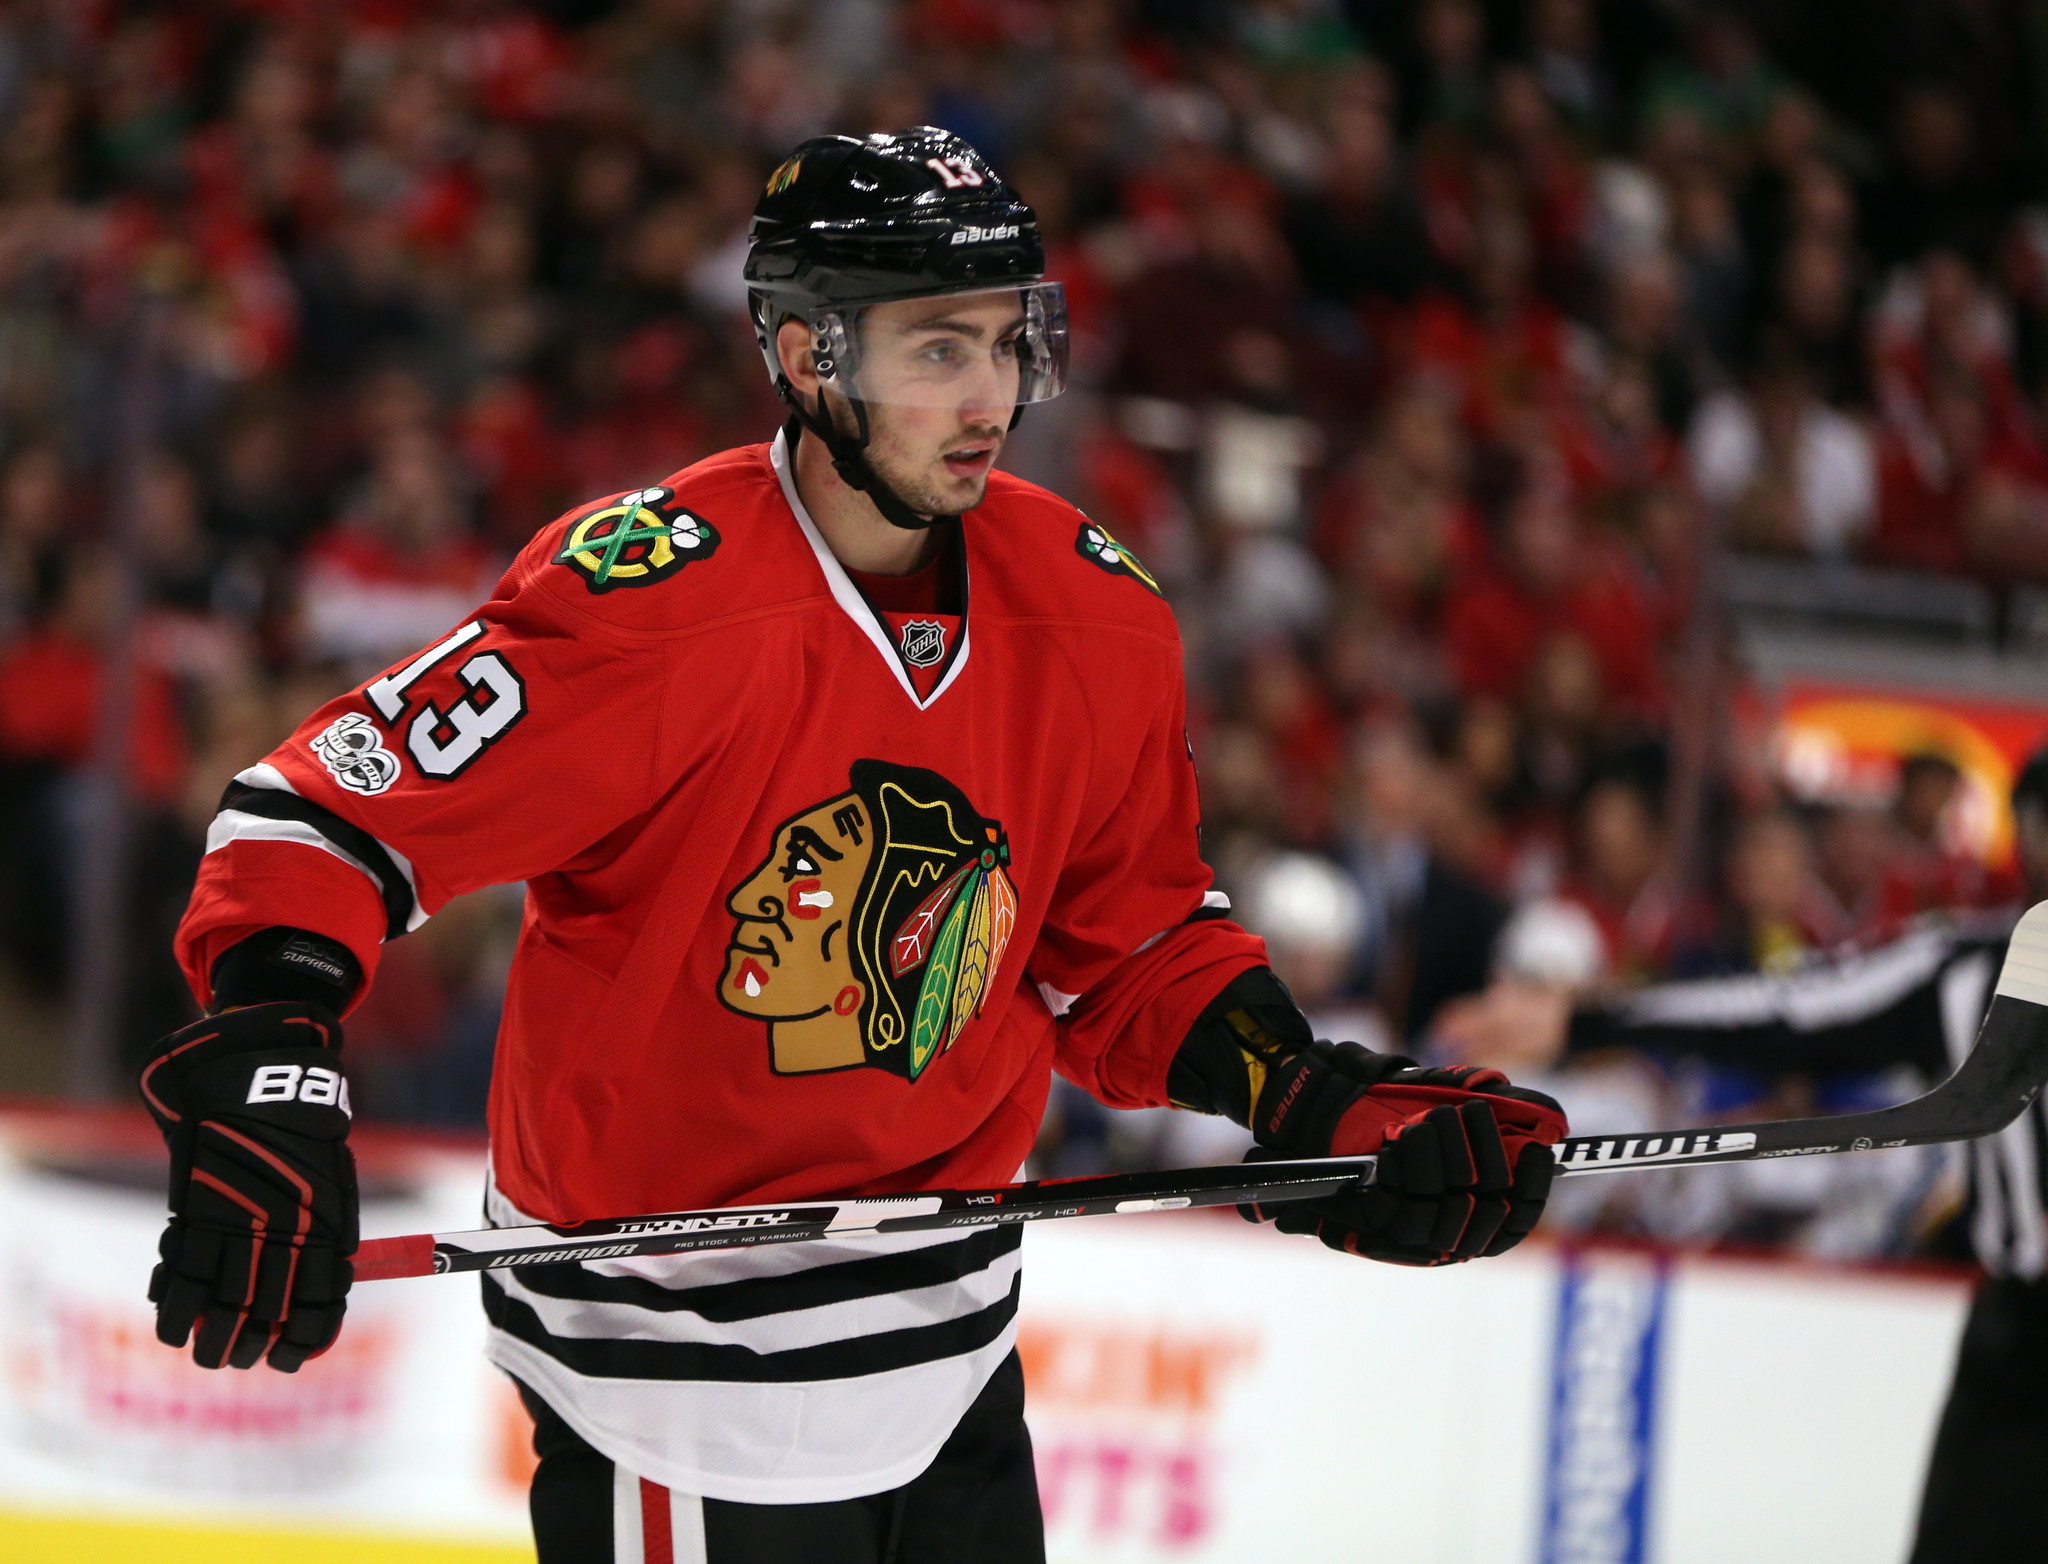 Tomas Jurco trying to prove he can fill a role among Blackhawks forwards d06b7ca26